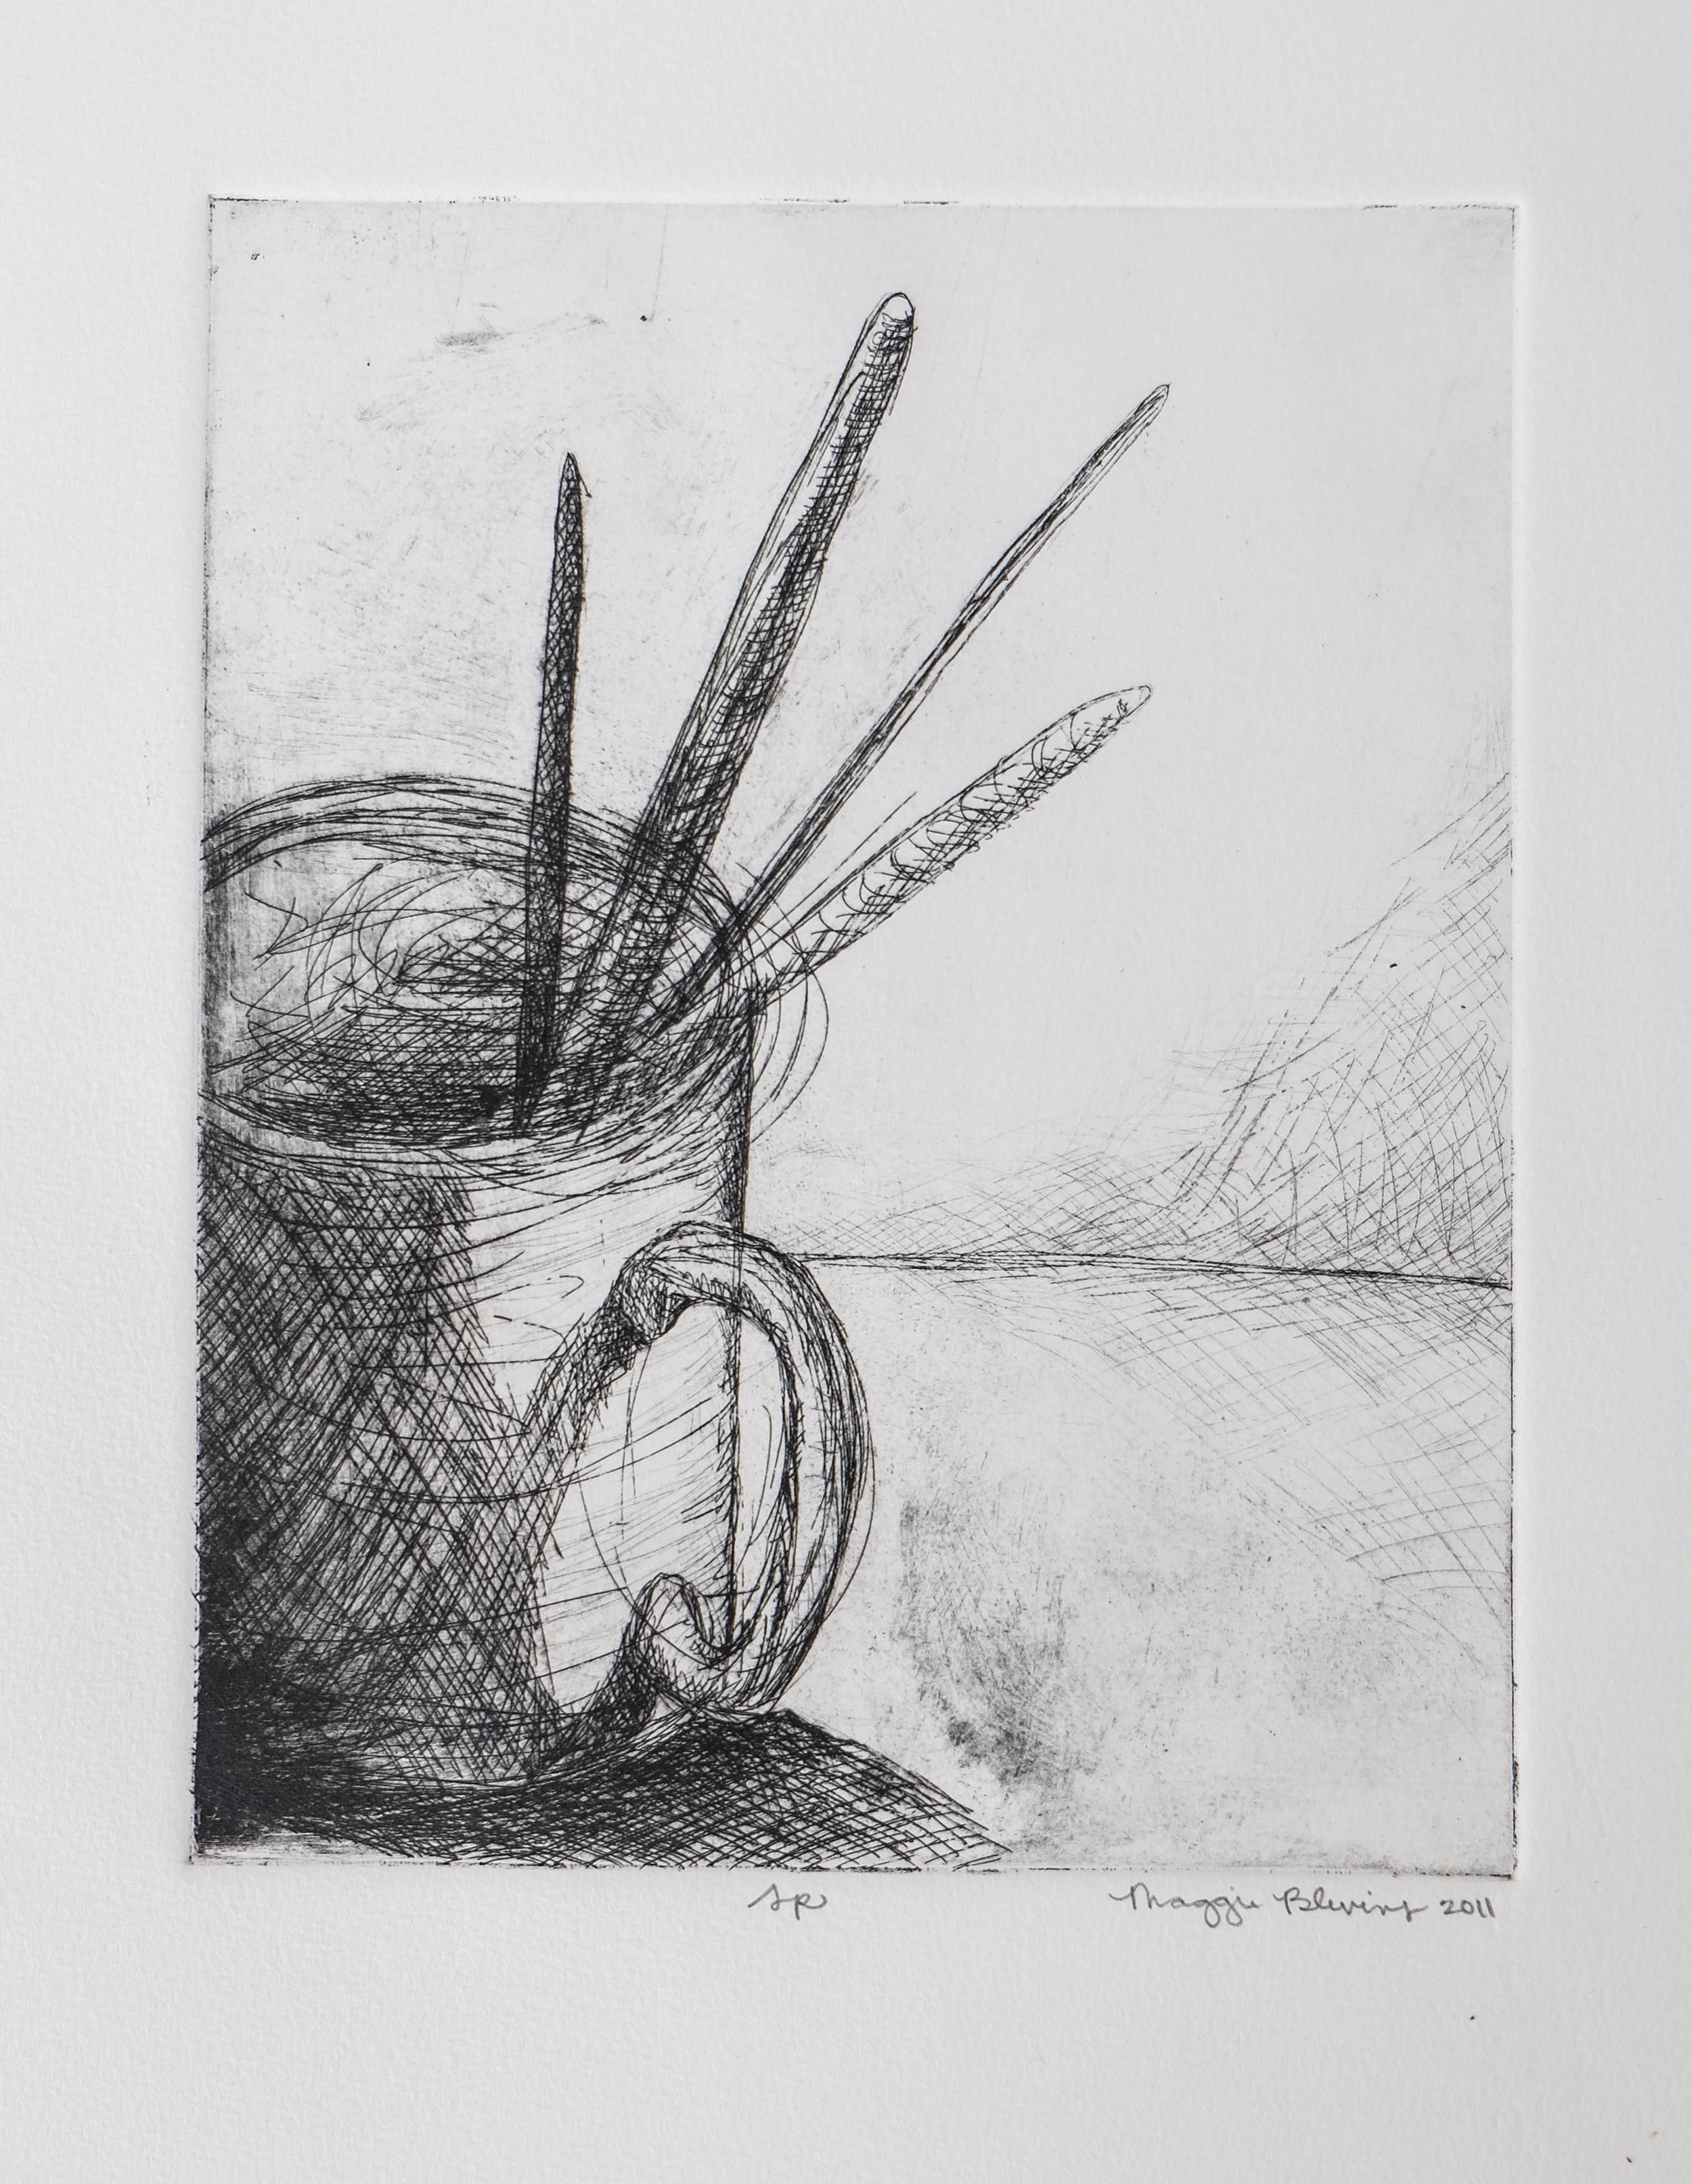 31. 8x10, Etching (1 of 3)